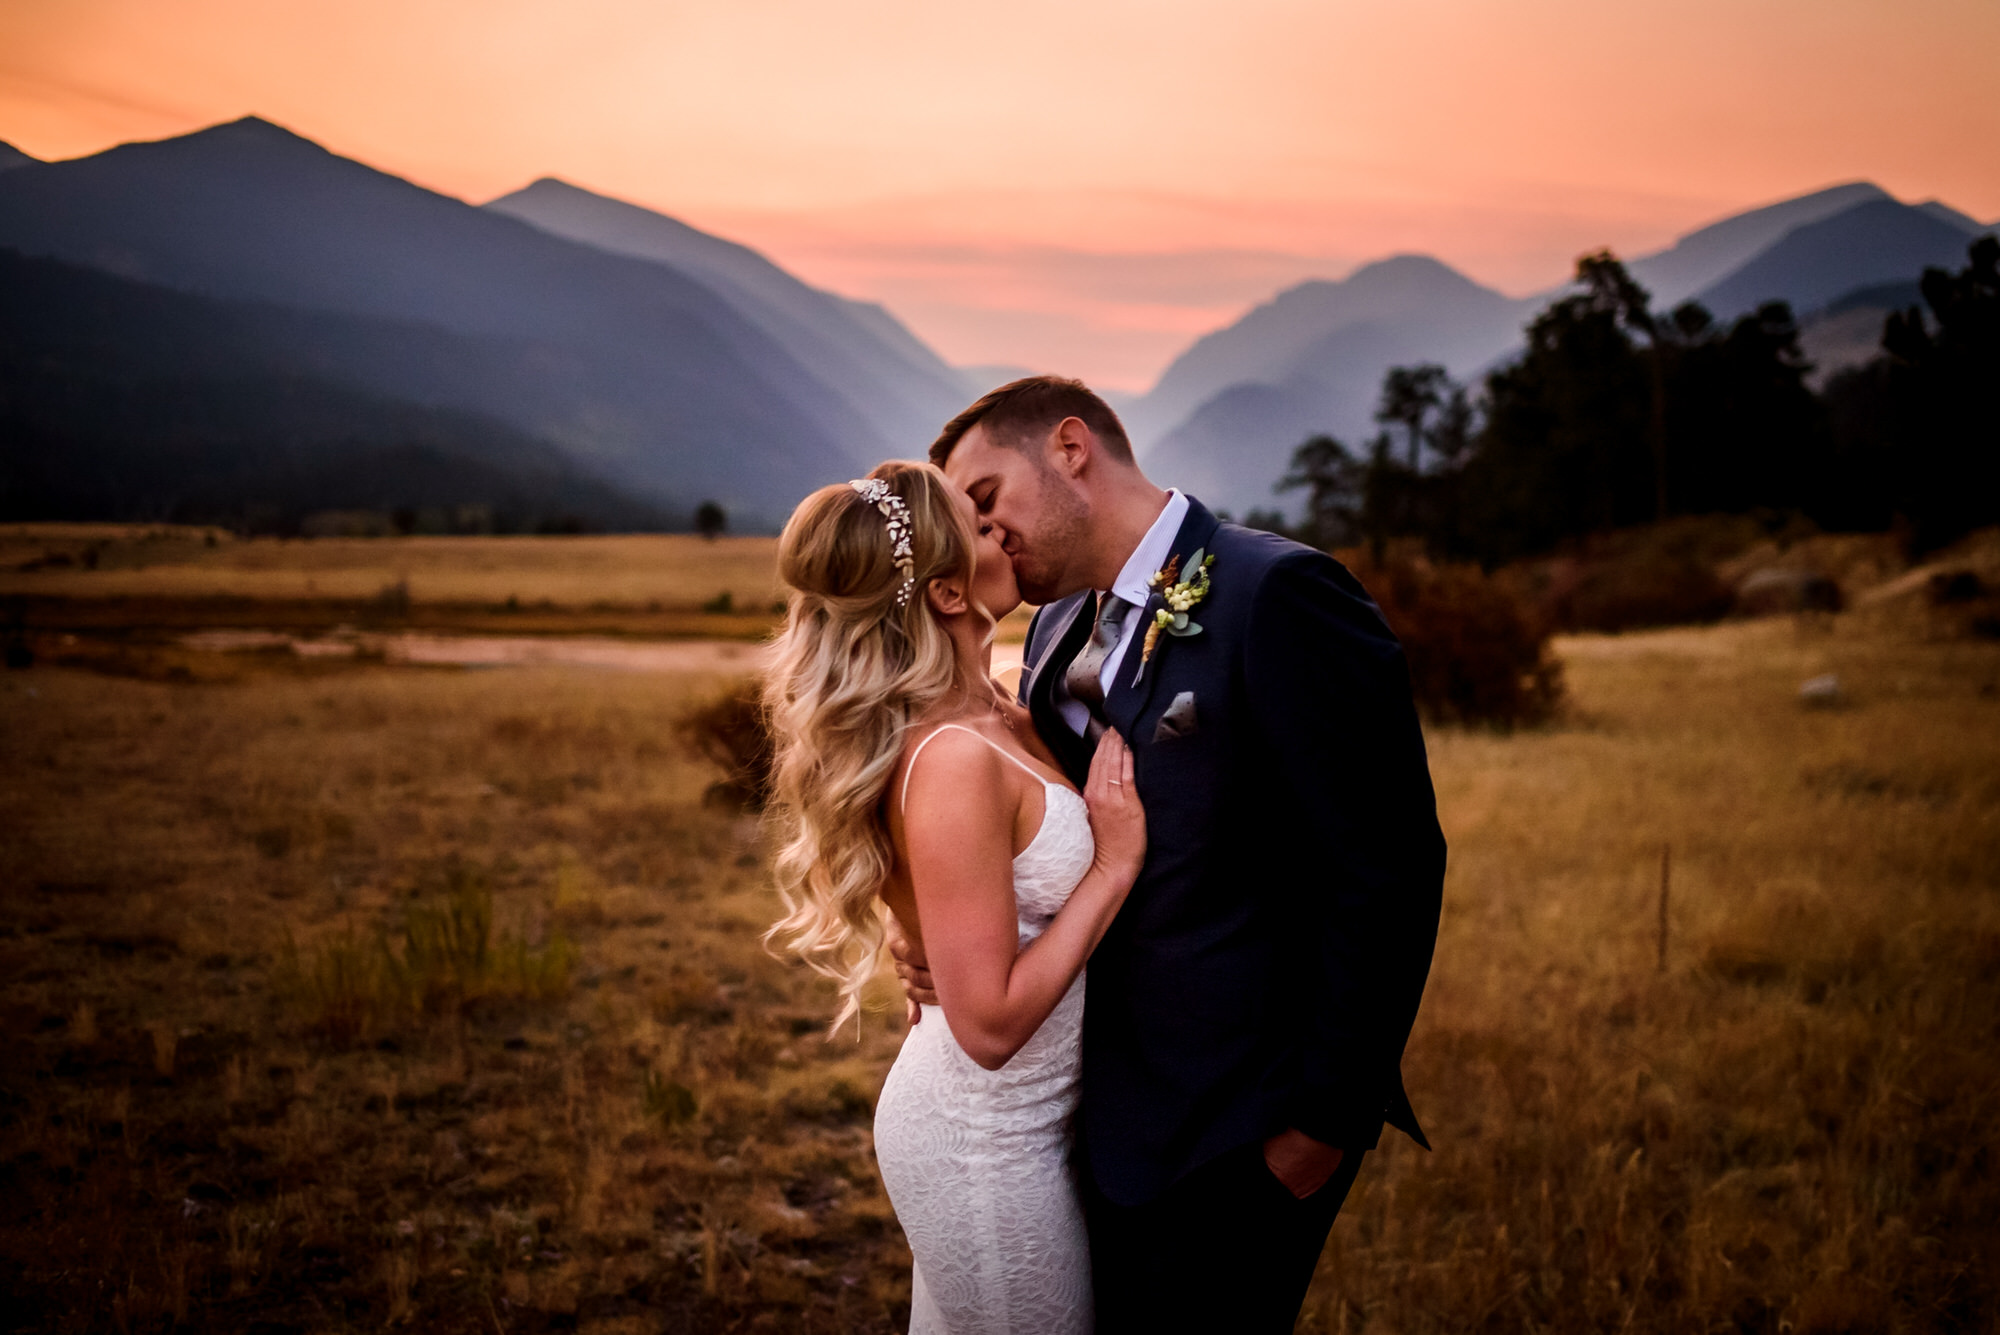 Colorado adventure Elopement in Rocky Mountain National Park at sunset